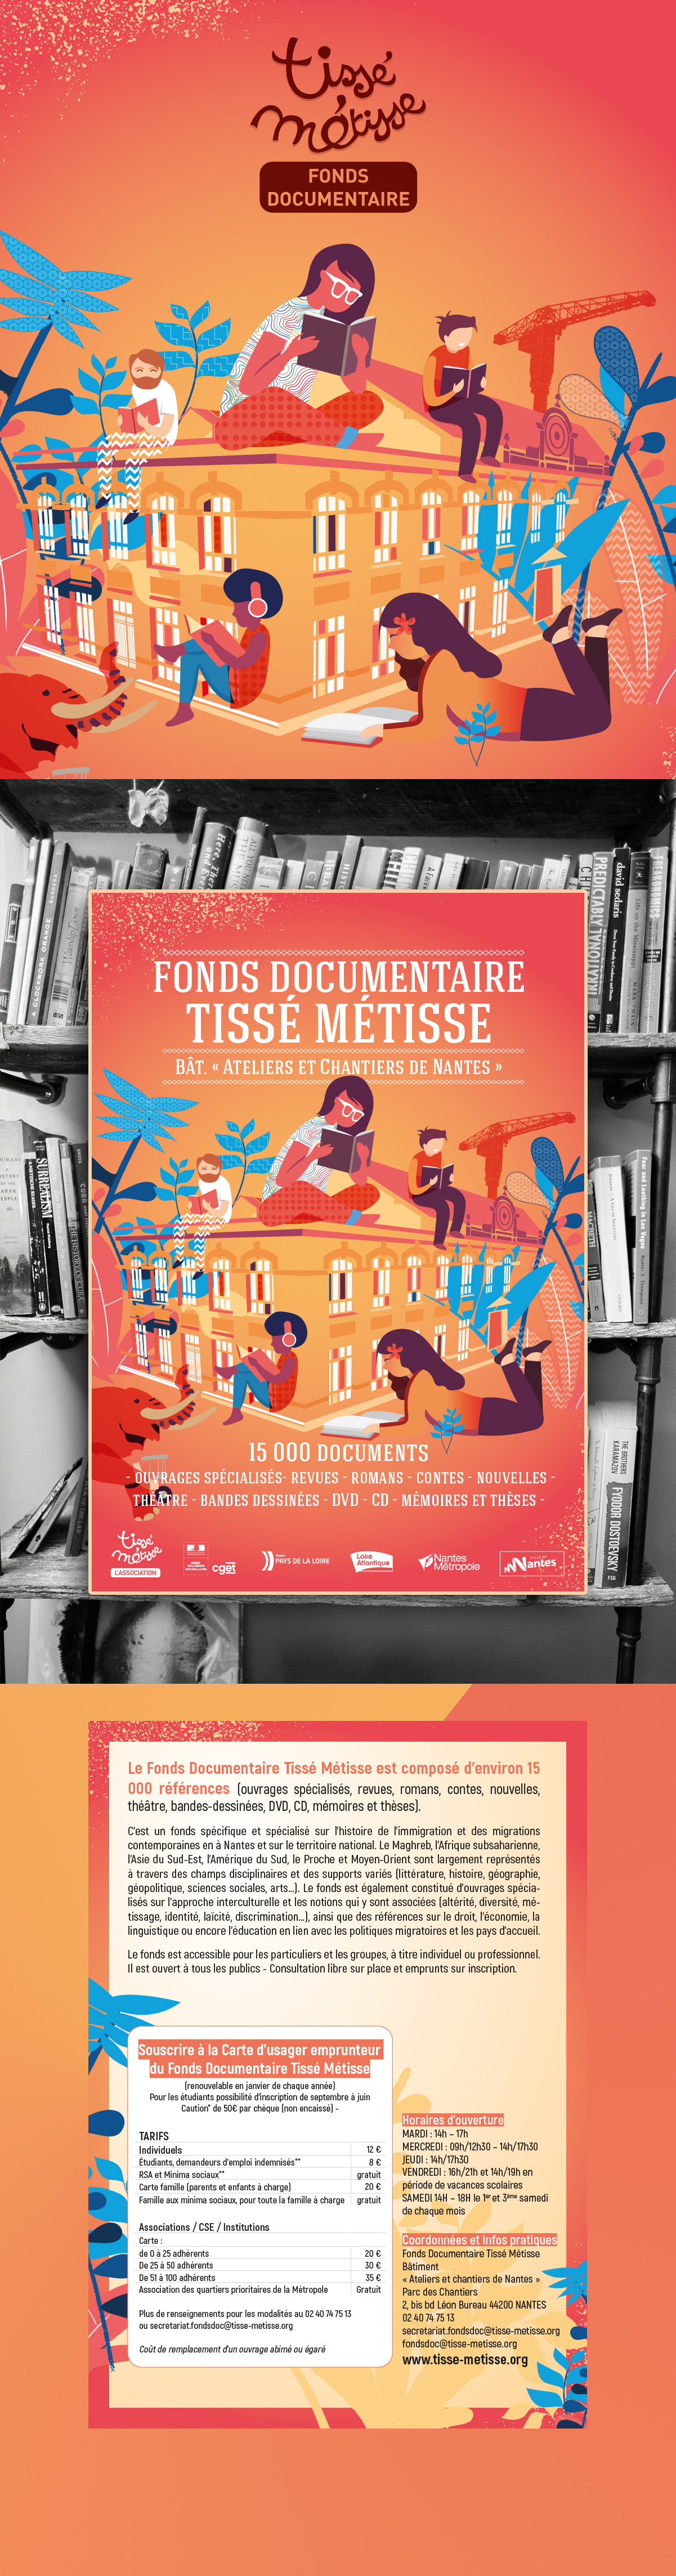 FONDS_DOC_2019 copie